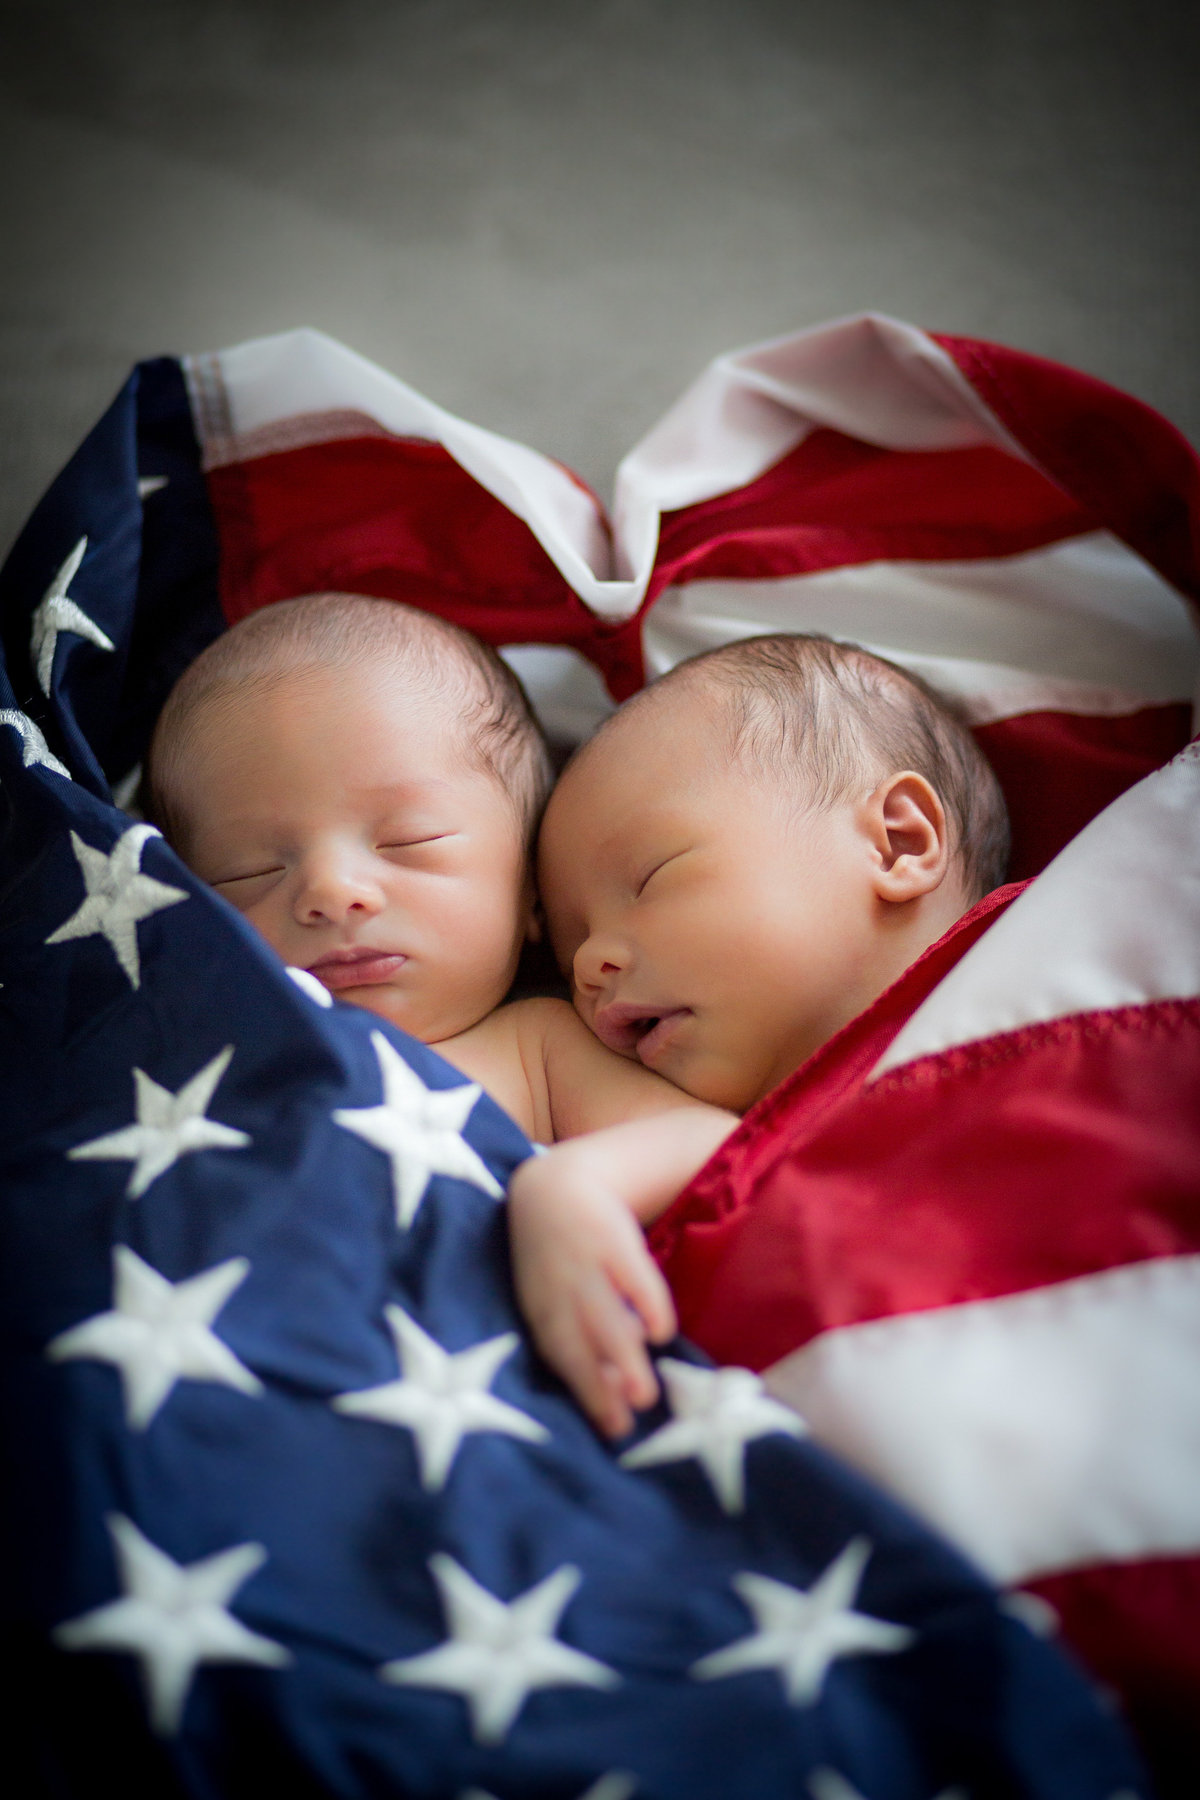 Newborn twins photography session of two infants wrapped in the American flag.